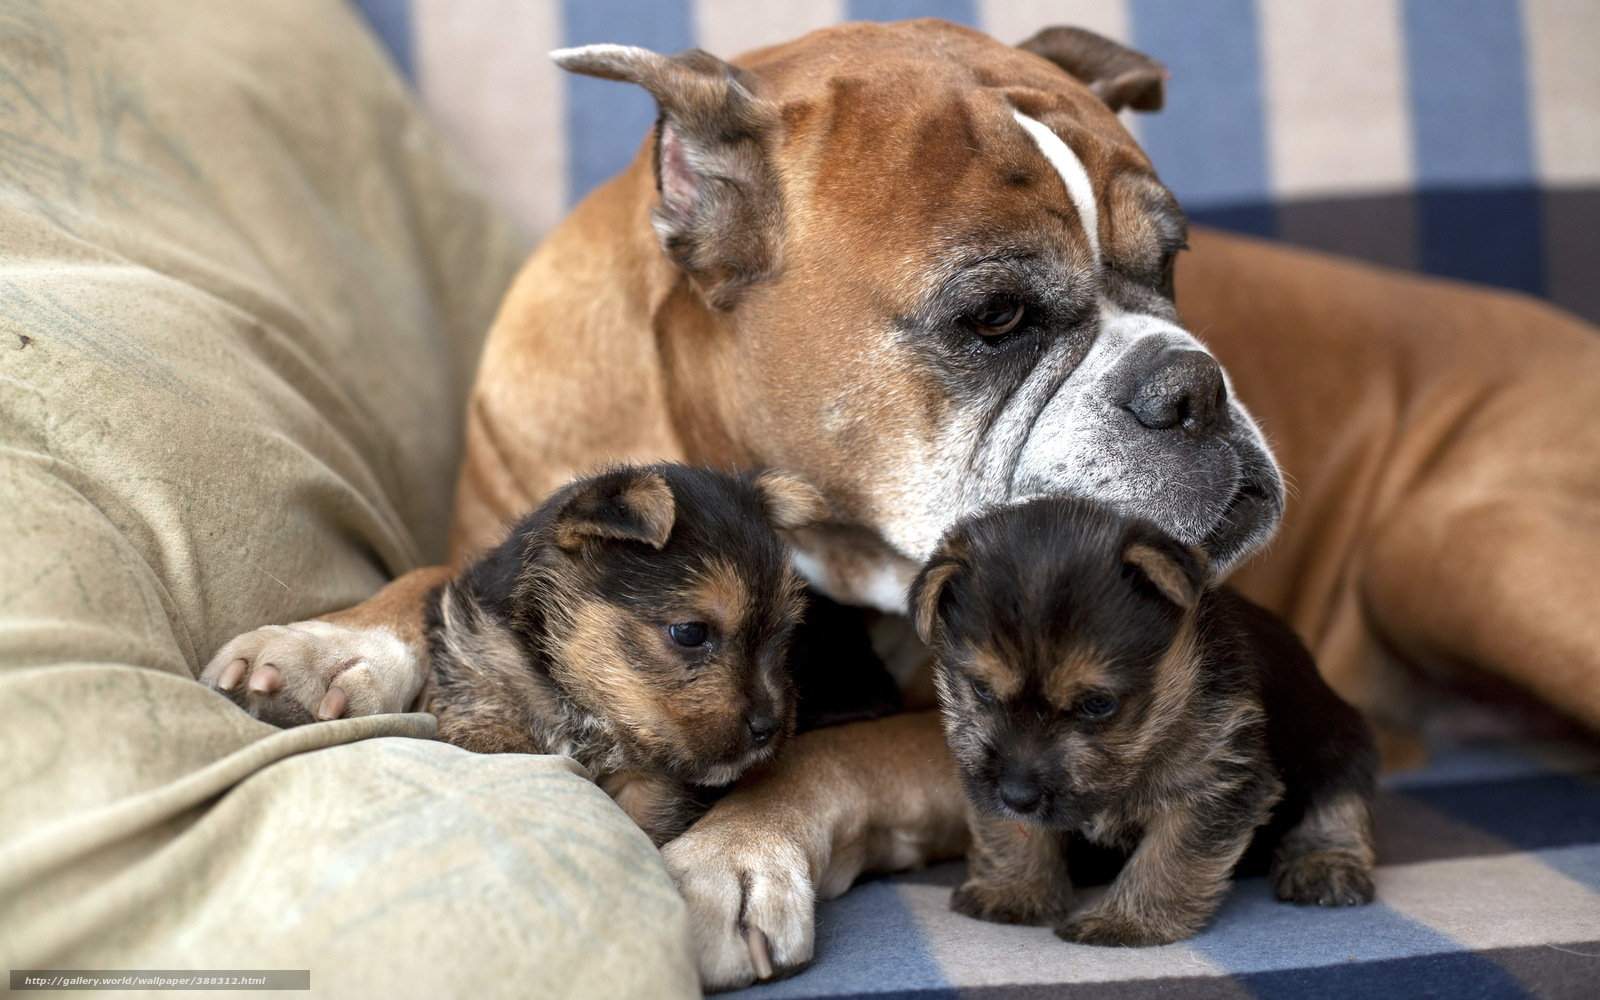 Mom Dog Carrying Puppy